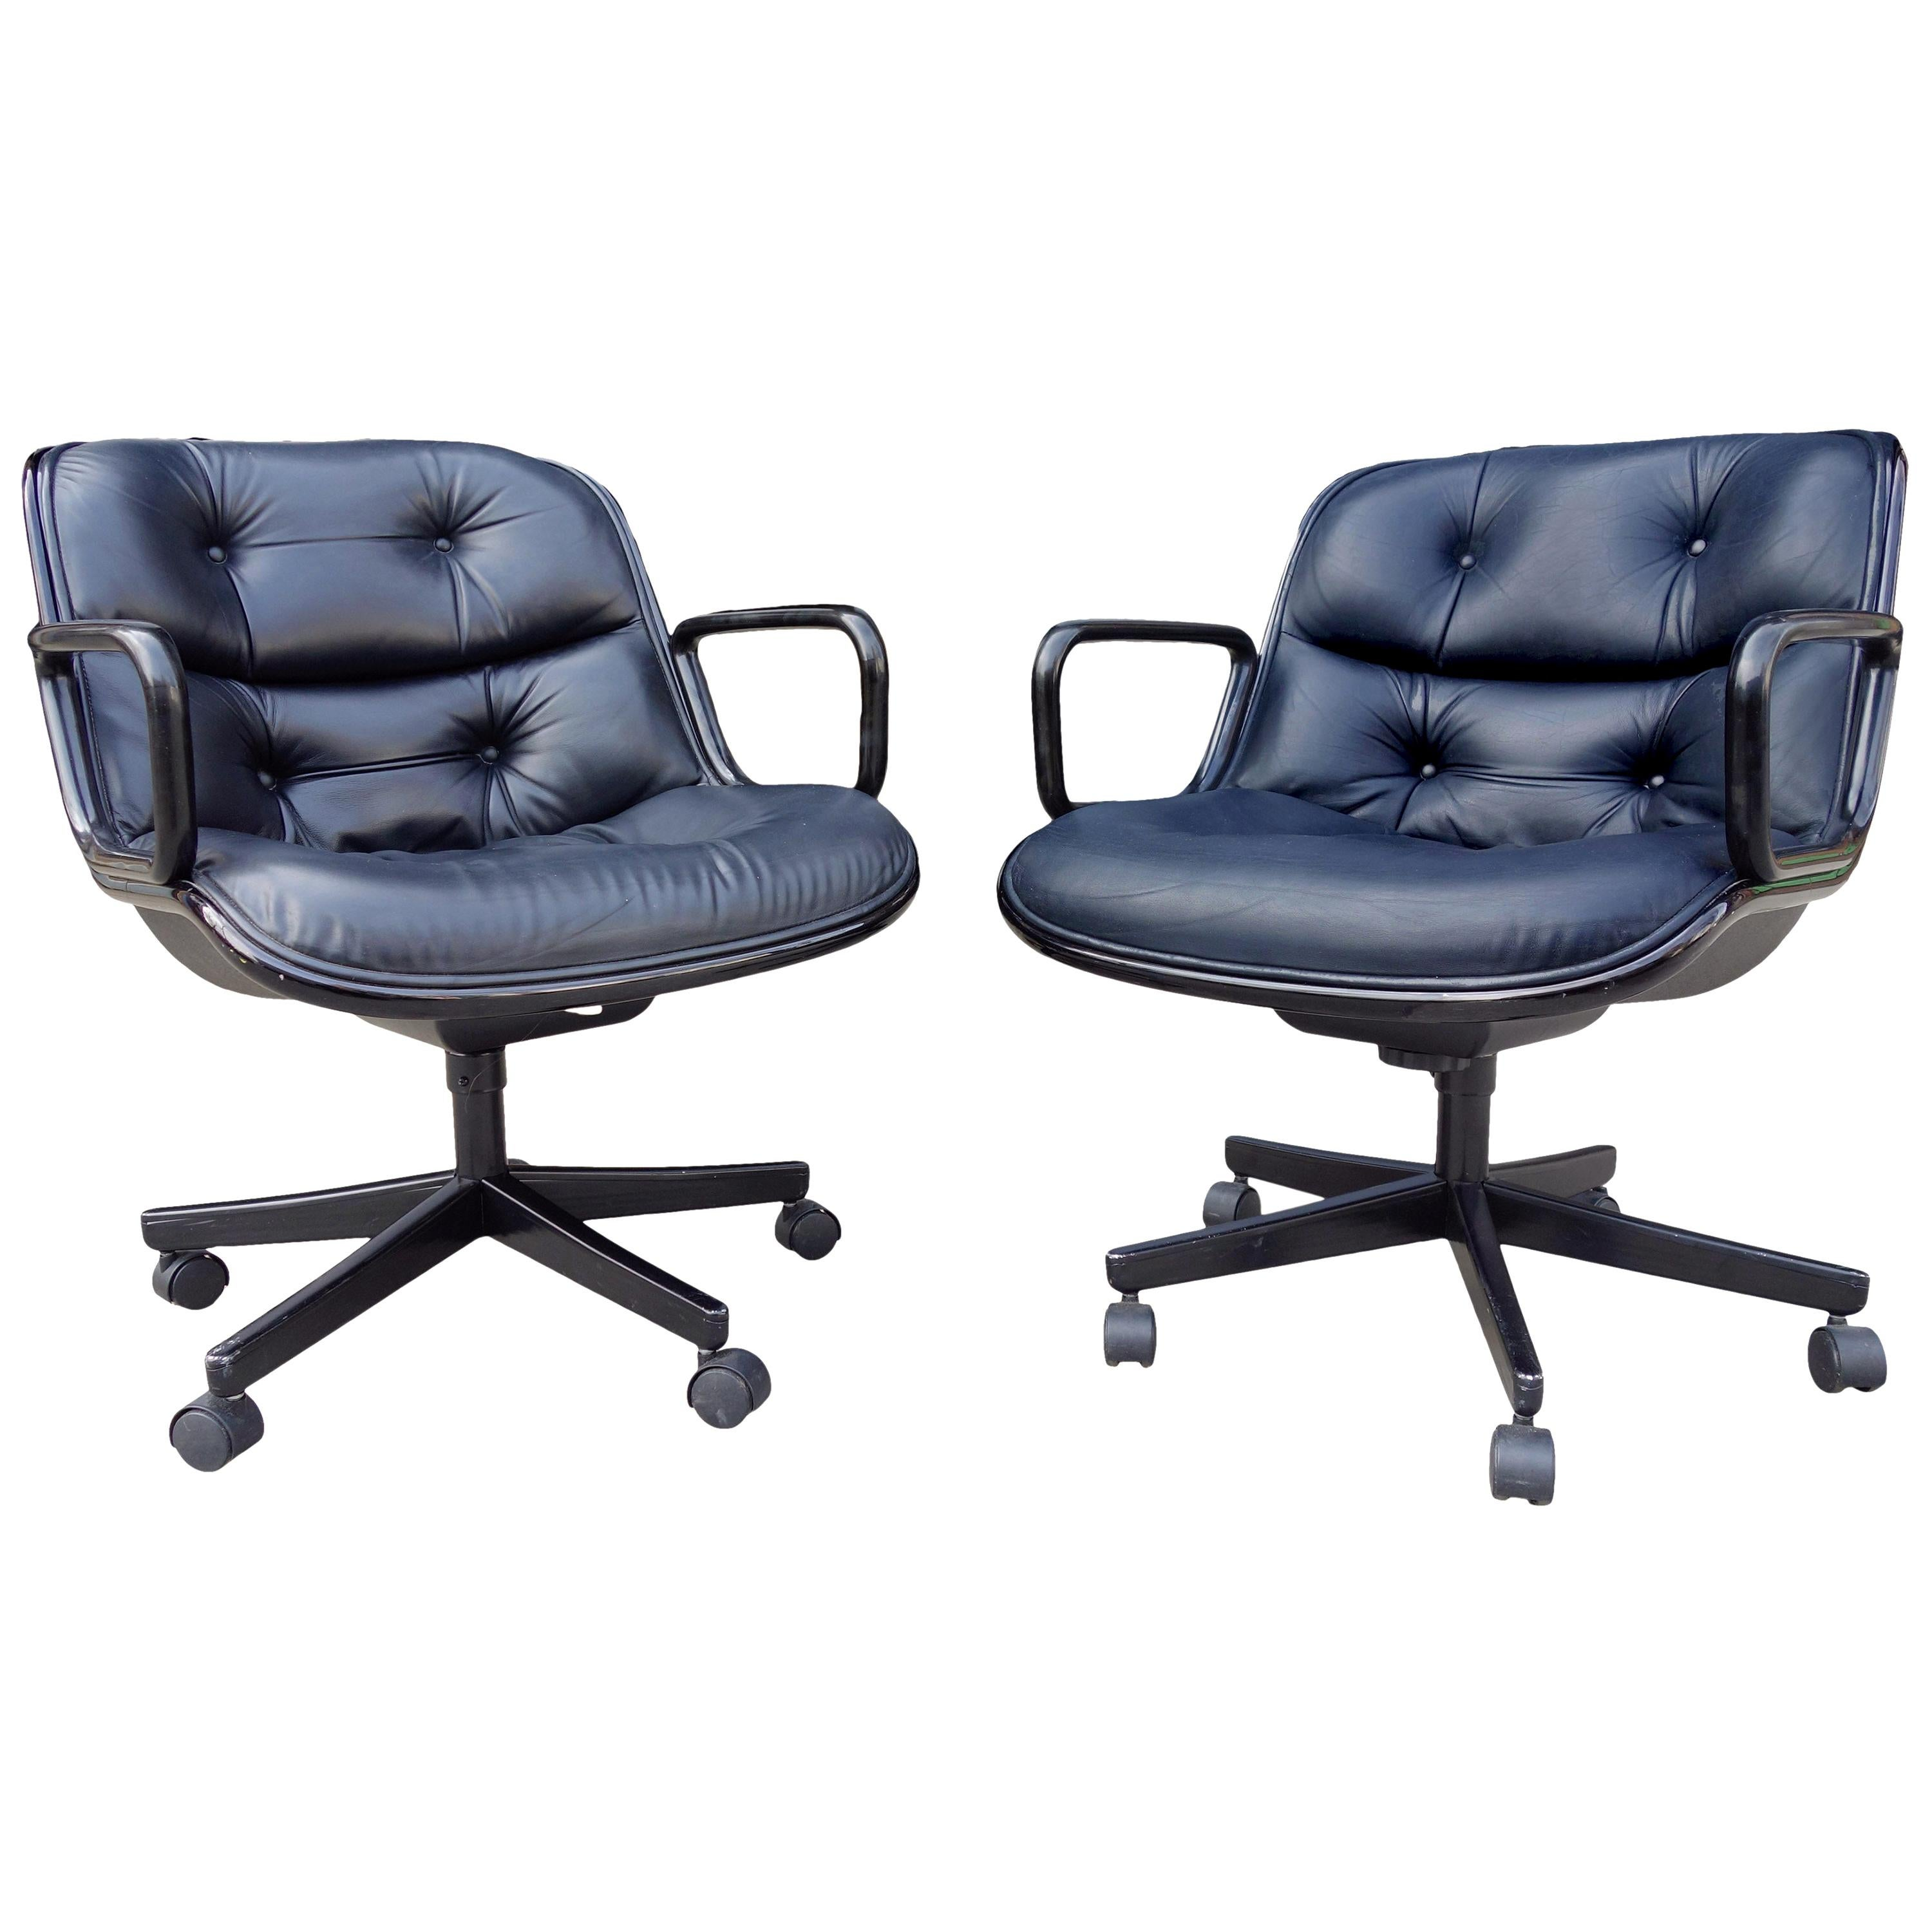 Midcentury Charles Pollock Executive Chair for Knoll in Black